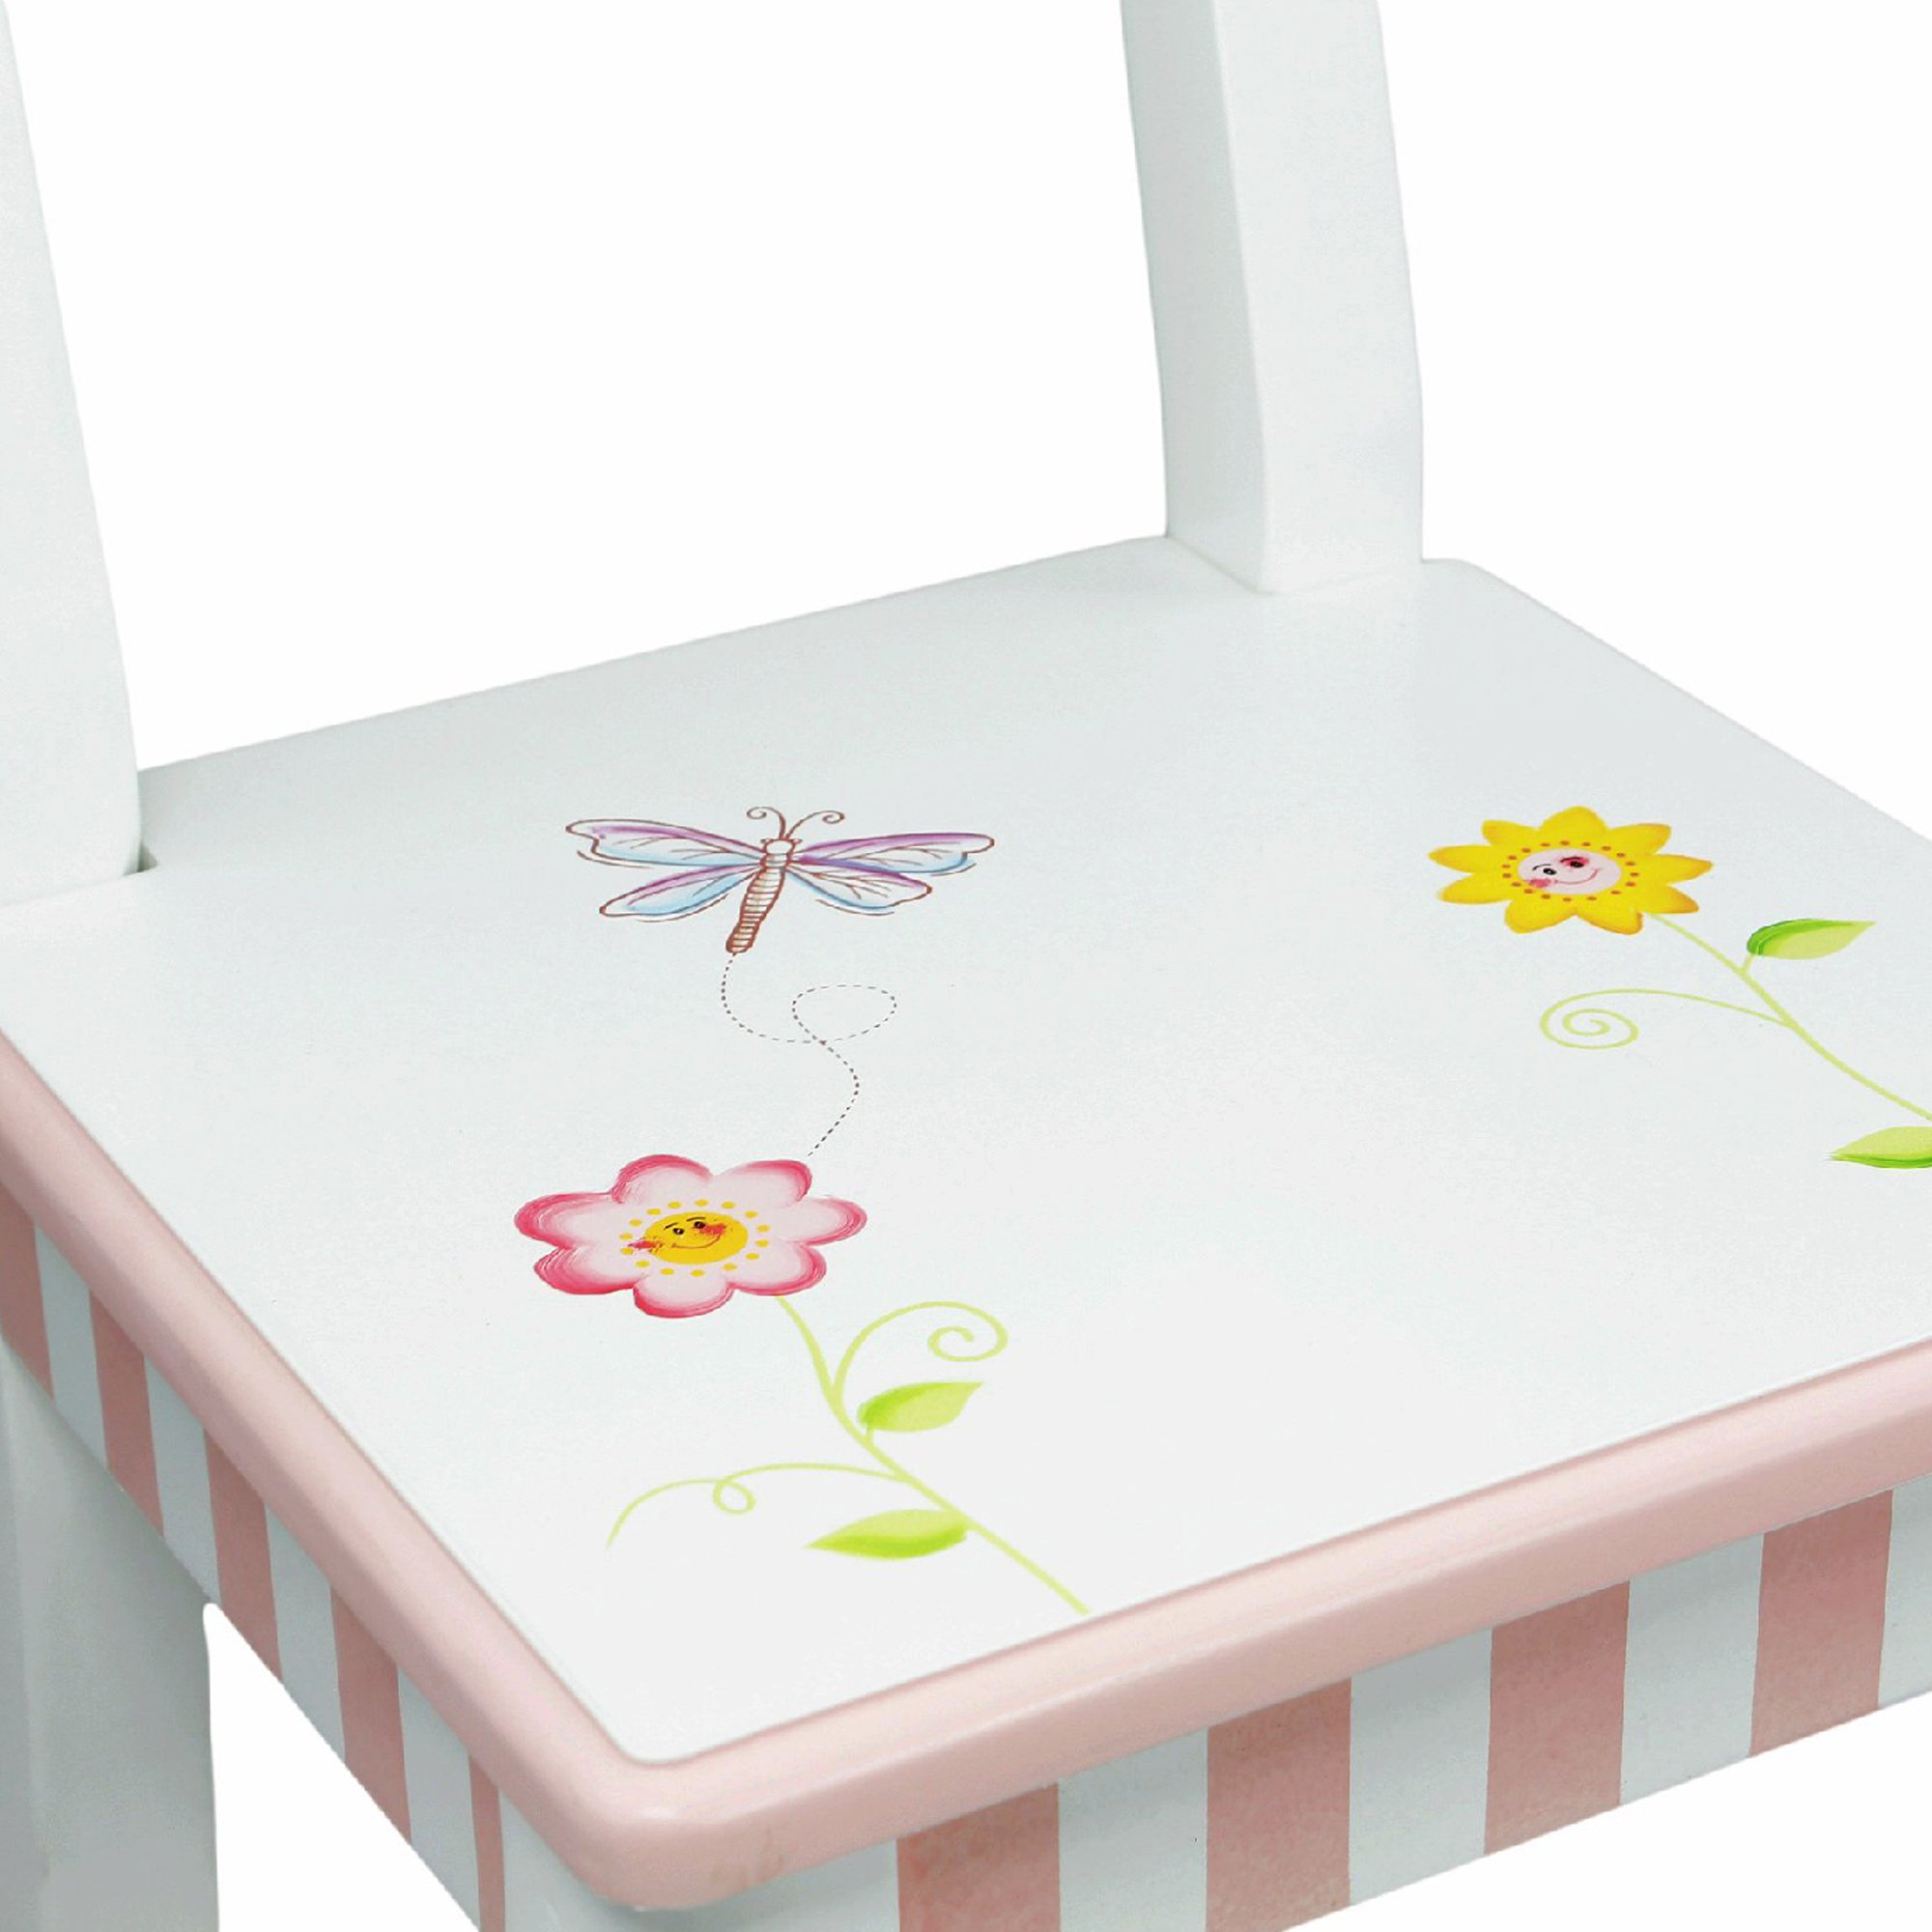 Fantasy Fields - Princess & Frog Thematic Hand Crafted Kids Wooden Table and 2 Chairs Set  Imagination Inspiring Hand Crafted & Hand Painted Details   Non-Toxic, Lead Free Water-based Paint by Fantasy Fields (Image #9)